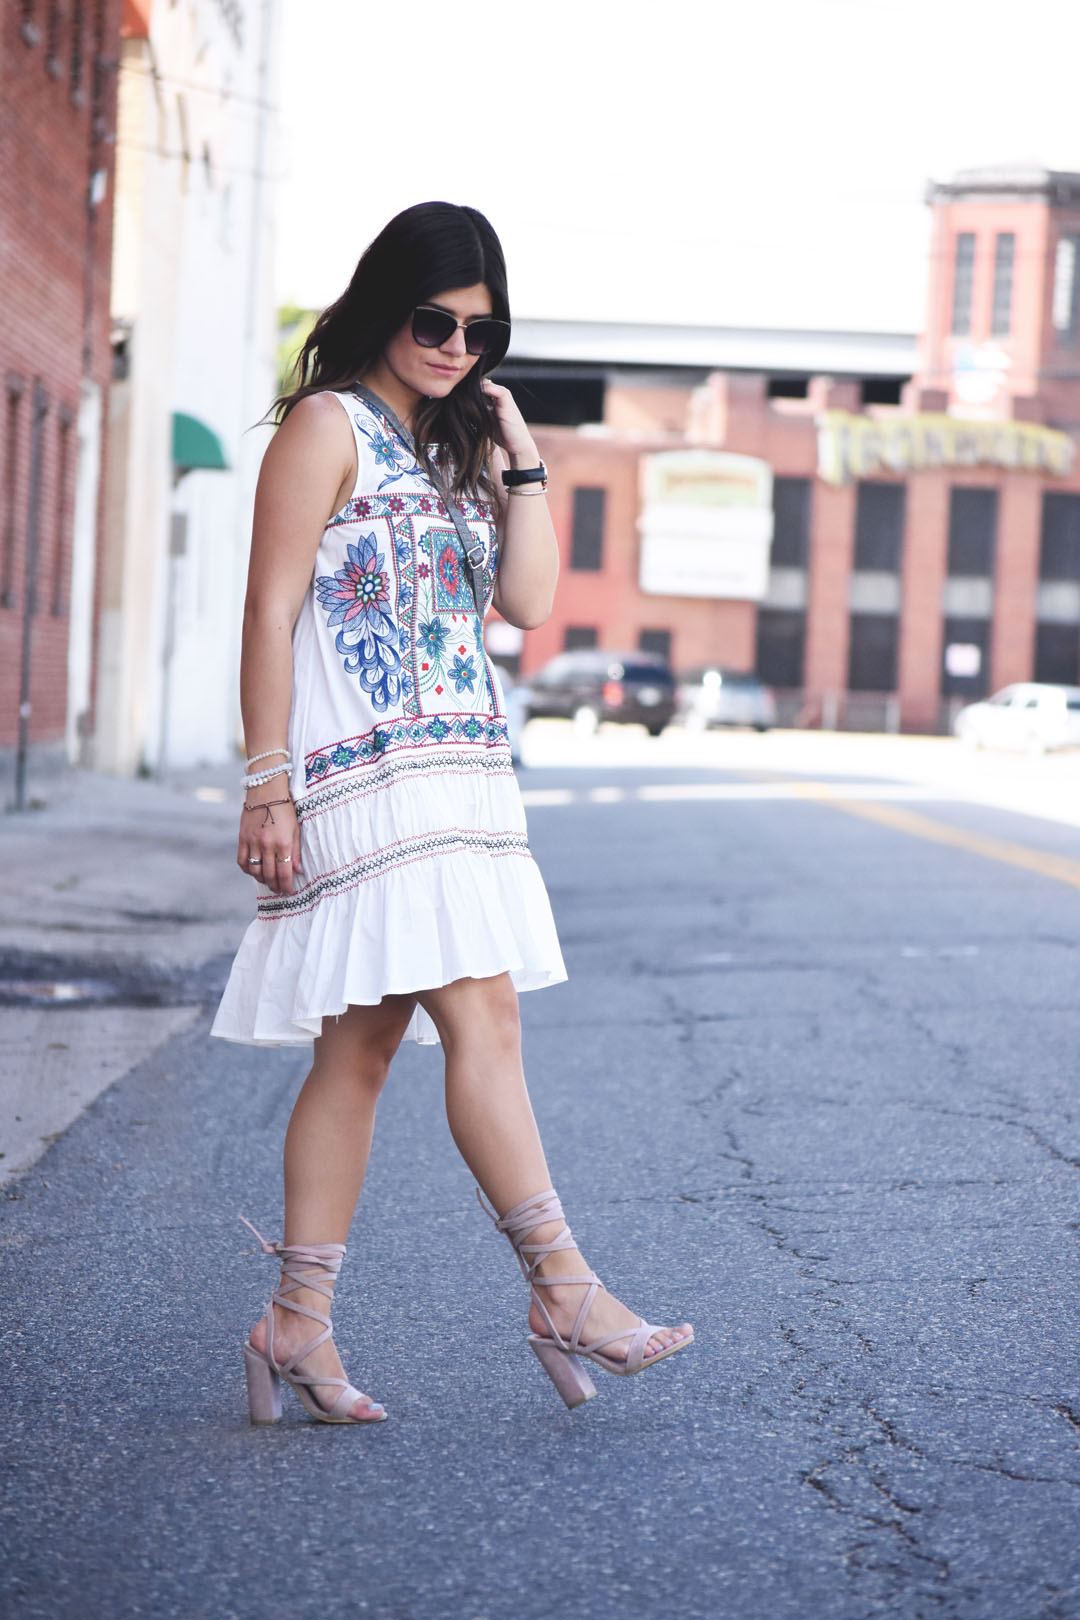 Carolina Hellal of the fashion blog Chic Talk wearing a Chicwish white dress with floral embroidery and Public Desire light pink lace up sandals